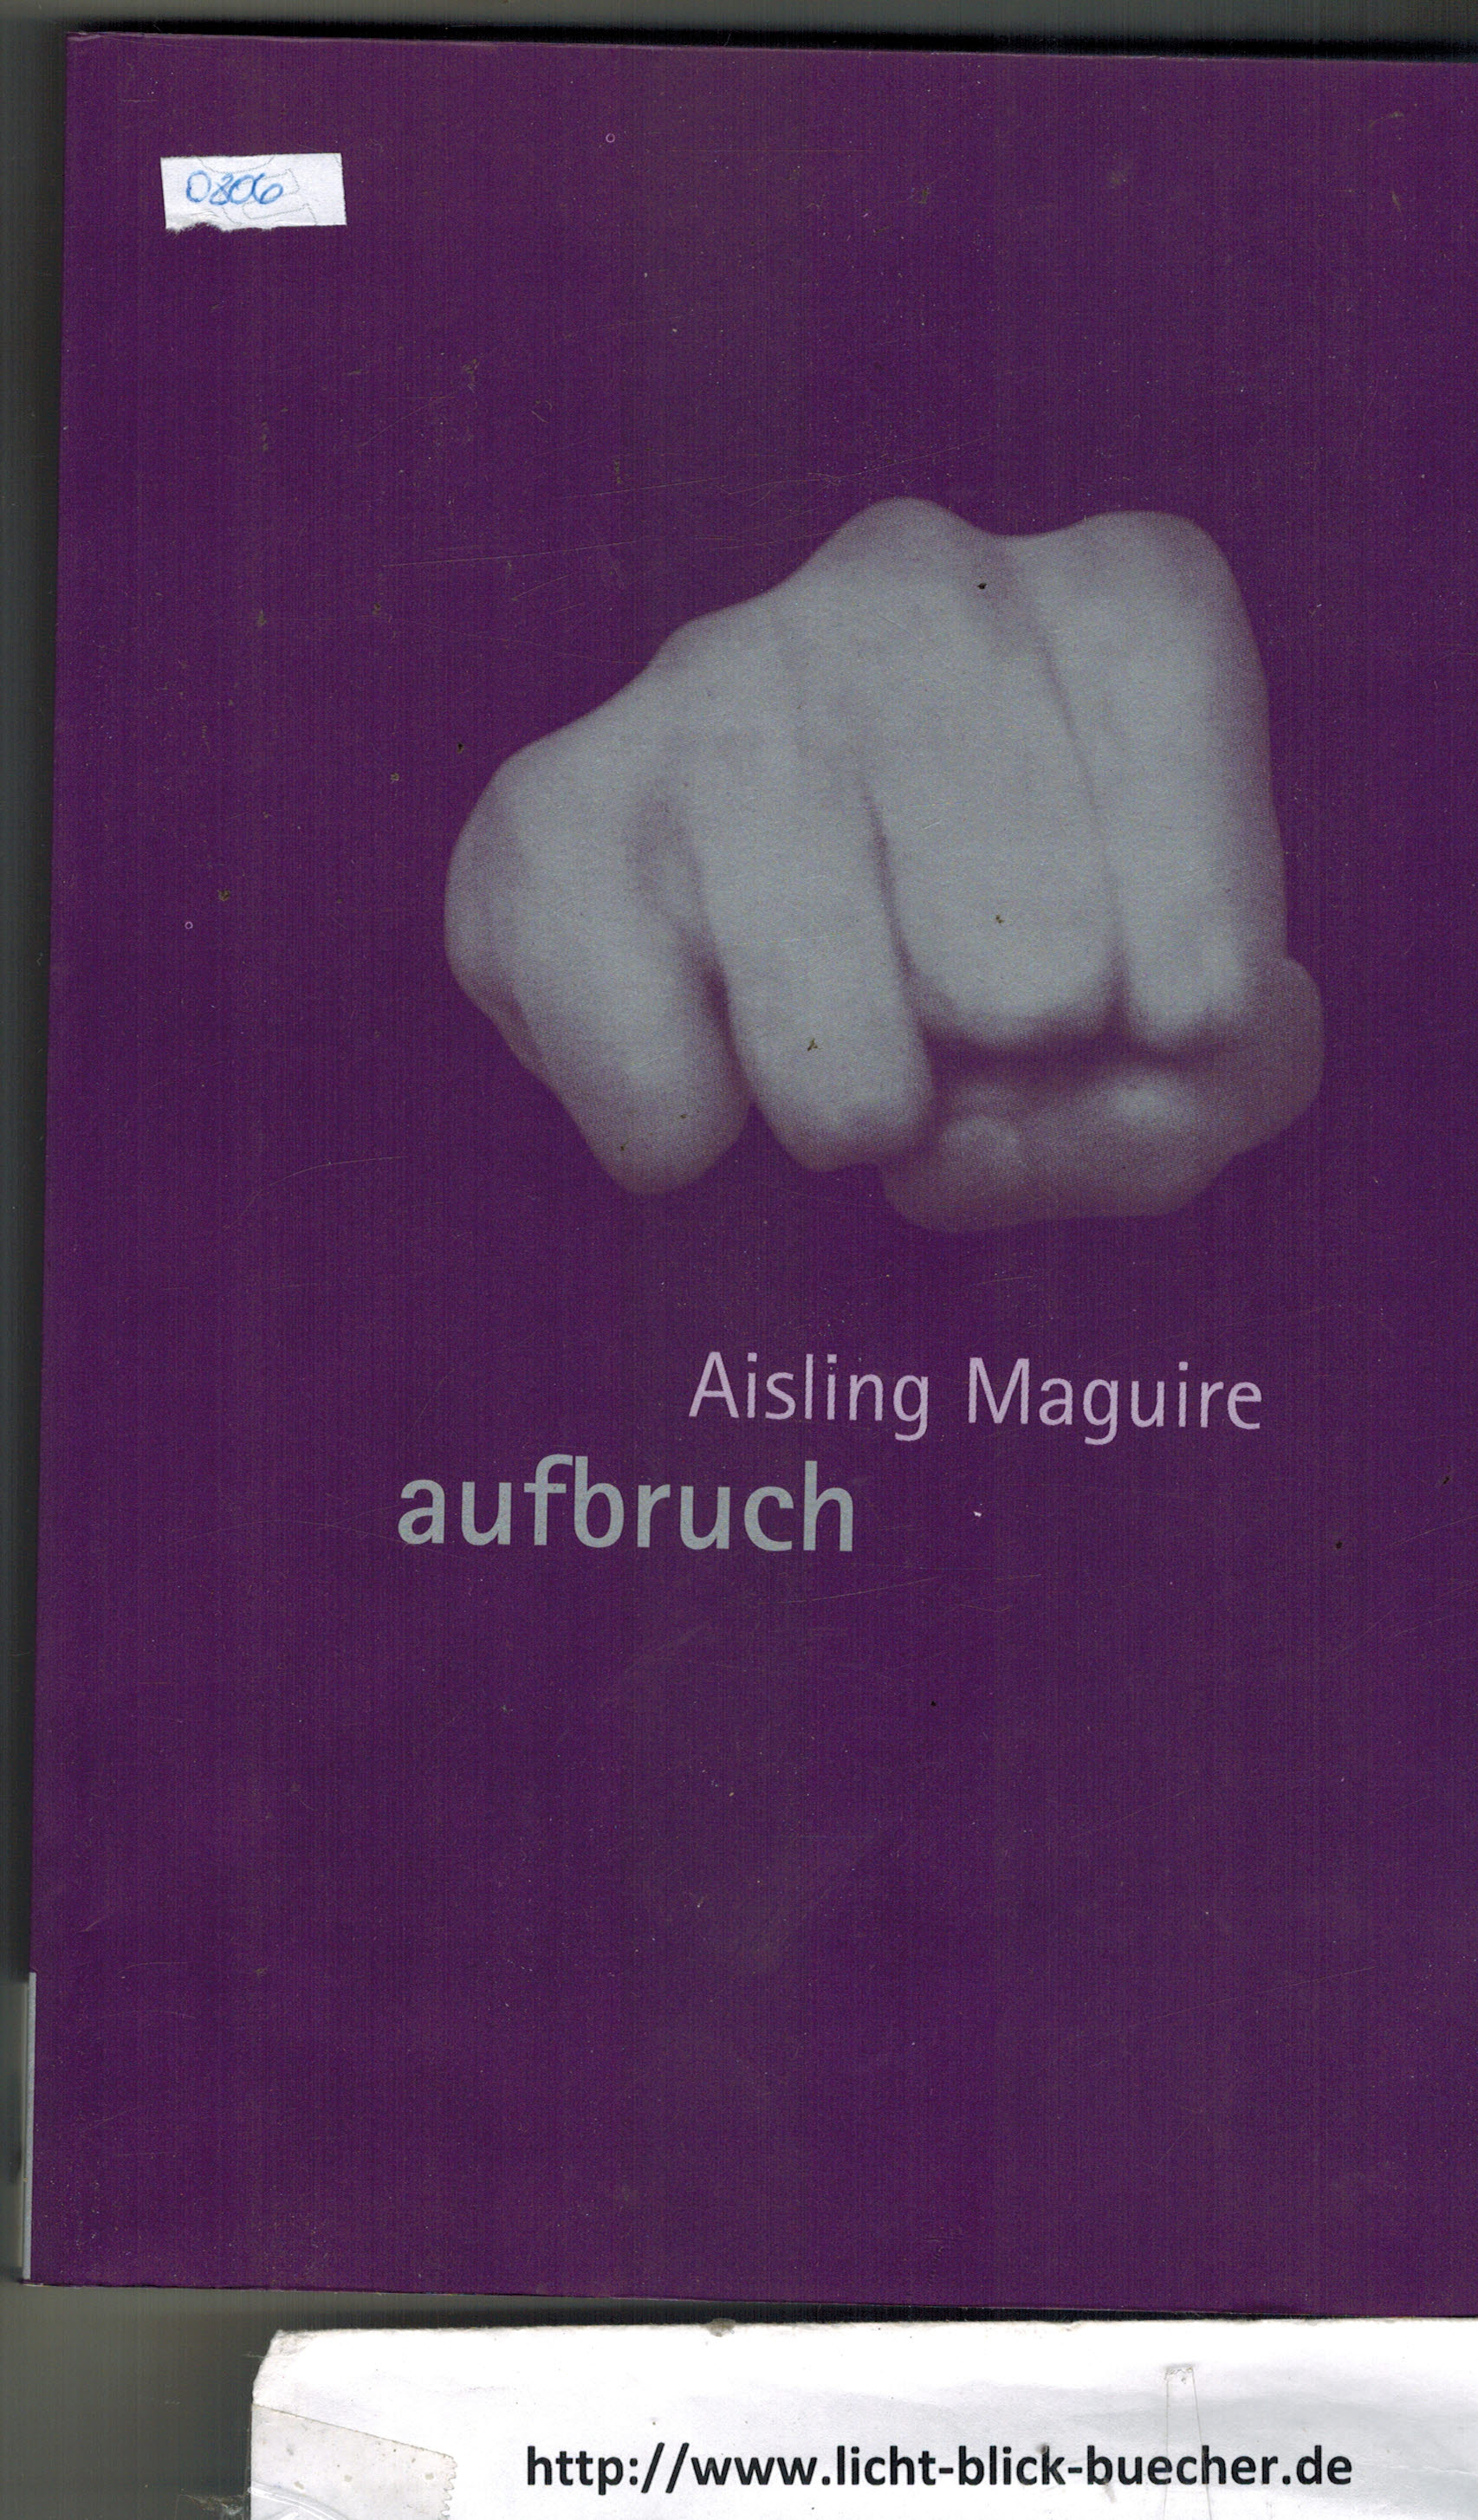 aufbruchAisiling Maguire